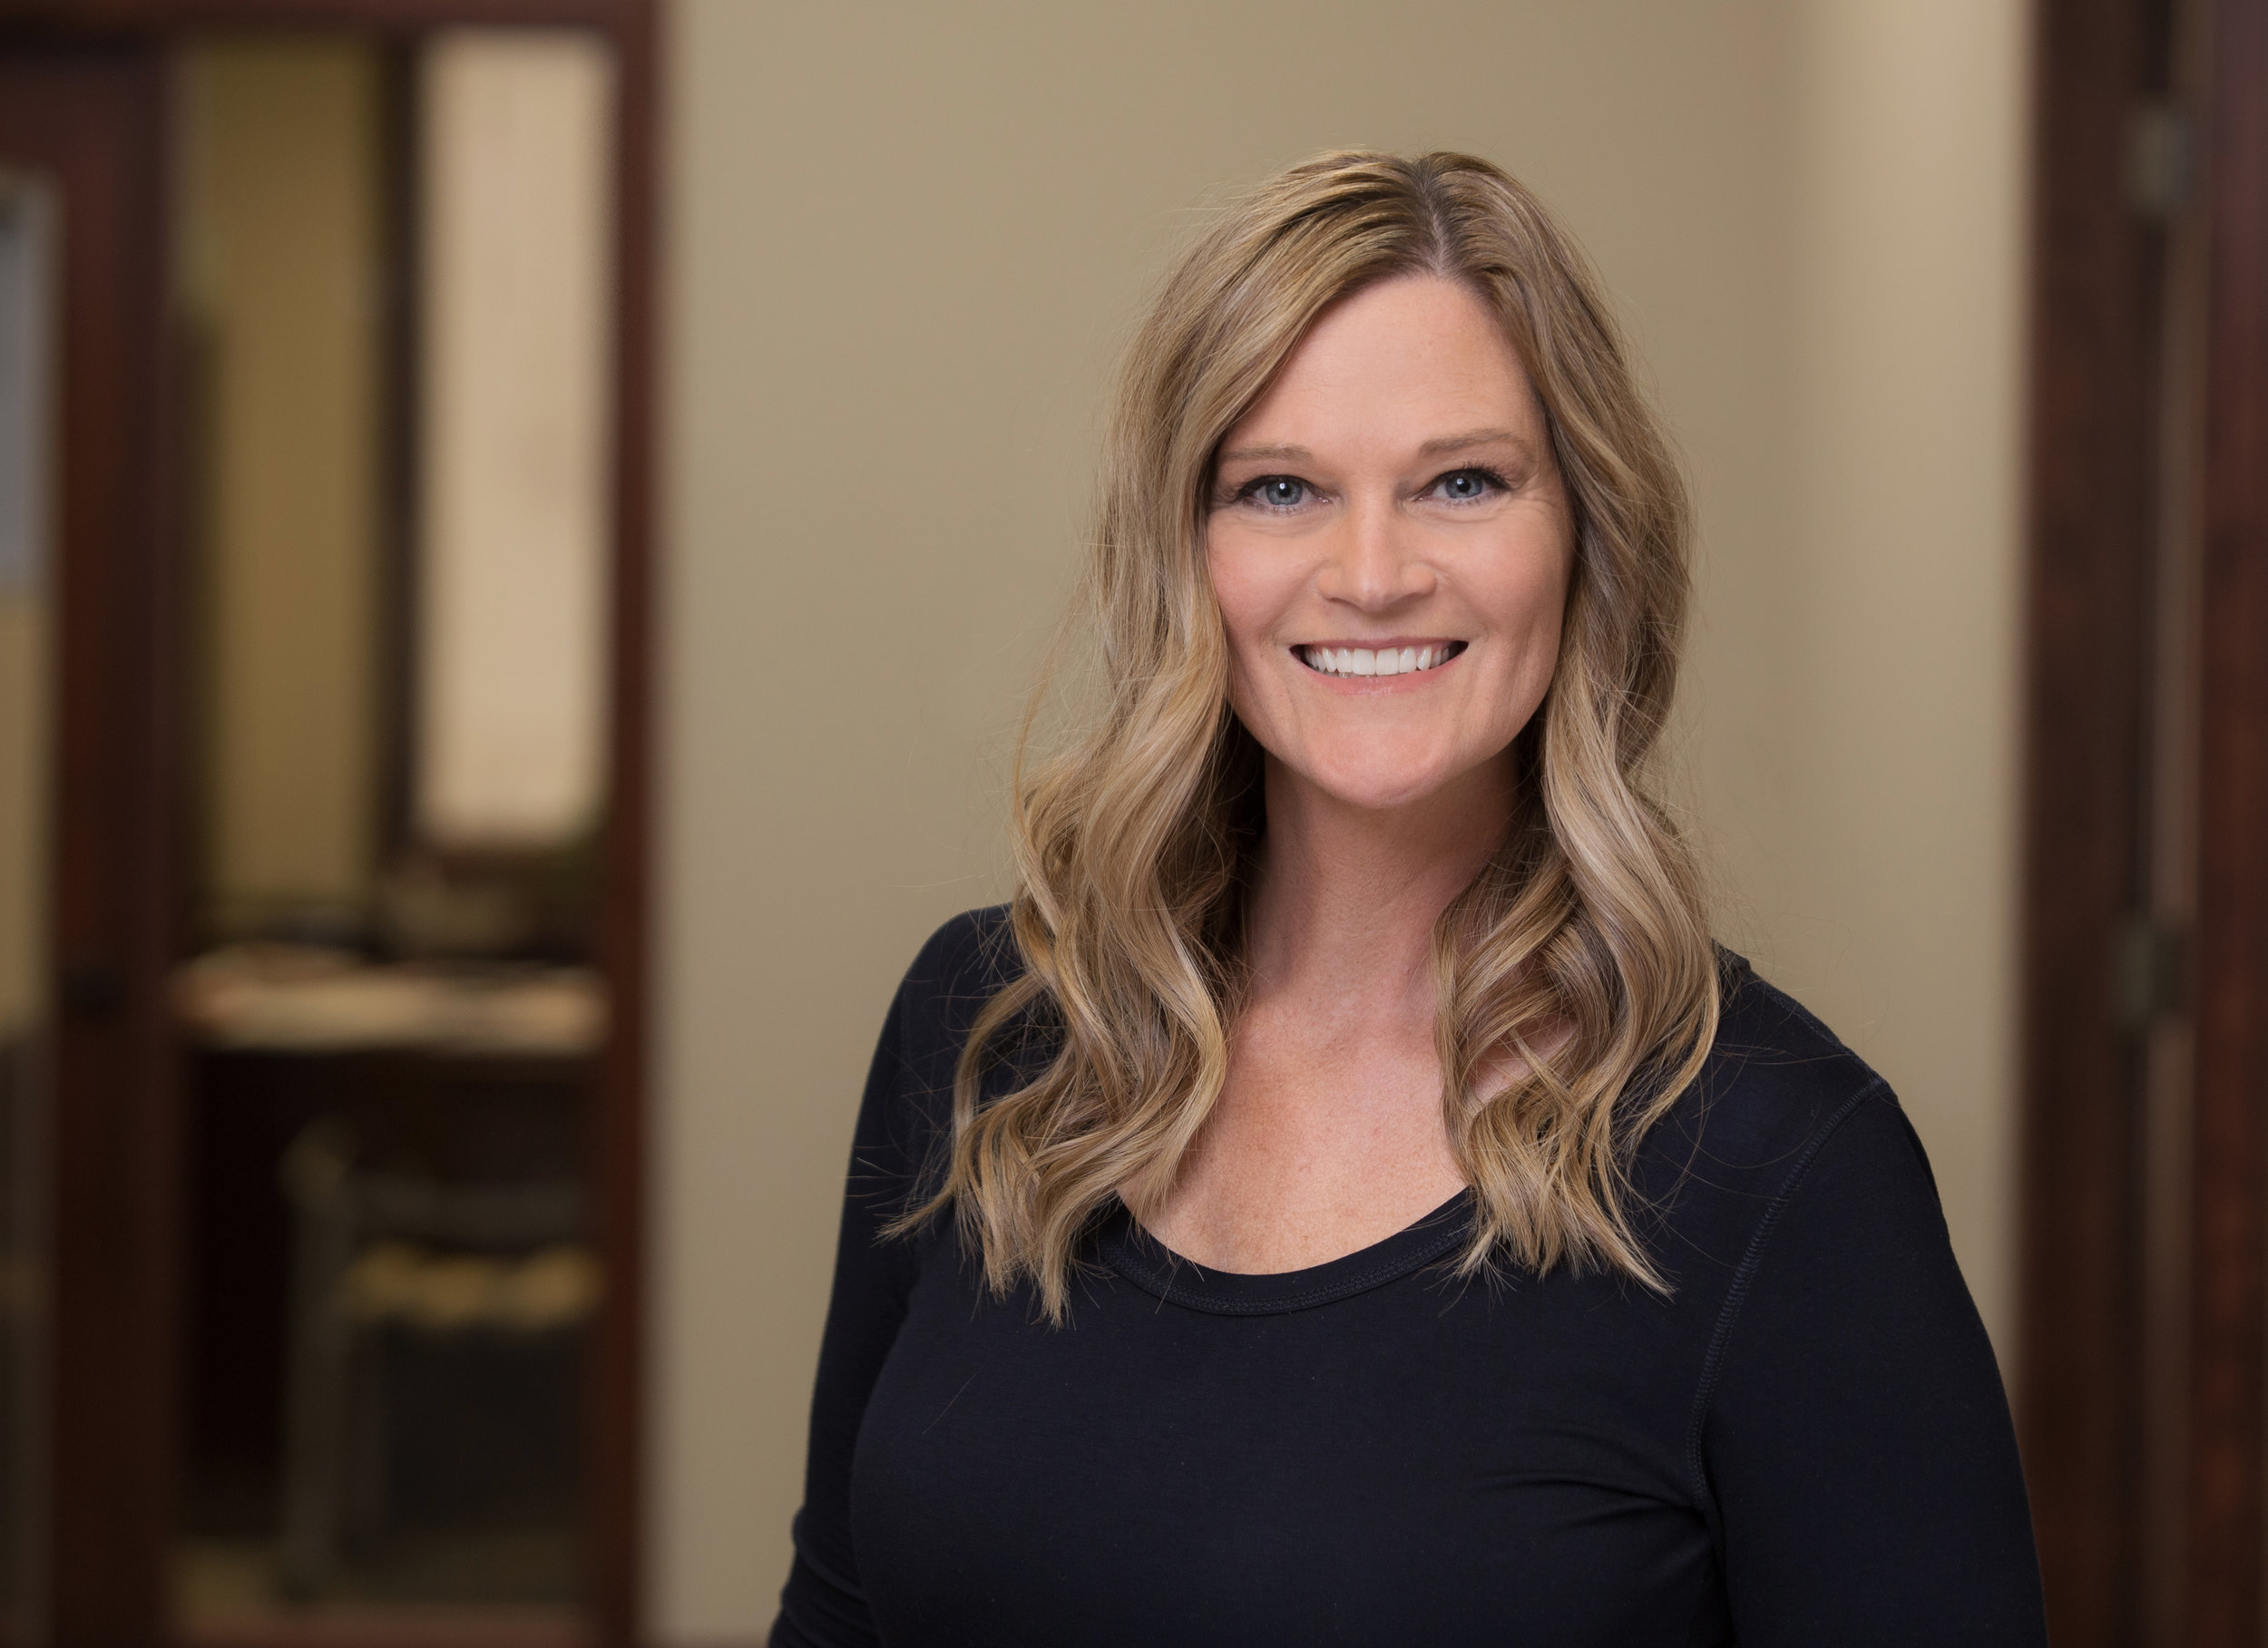 Jennifer Rudnick - Customer Service Representative Jennifer grew up in Moorhead, MN and is now a resident of West Fargo, ND. She joined the Vaaler team in 2018. Before coming to Vaaler, she worked as a Customer Service Manager and bookkeeper.